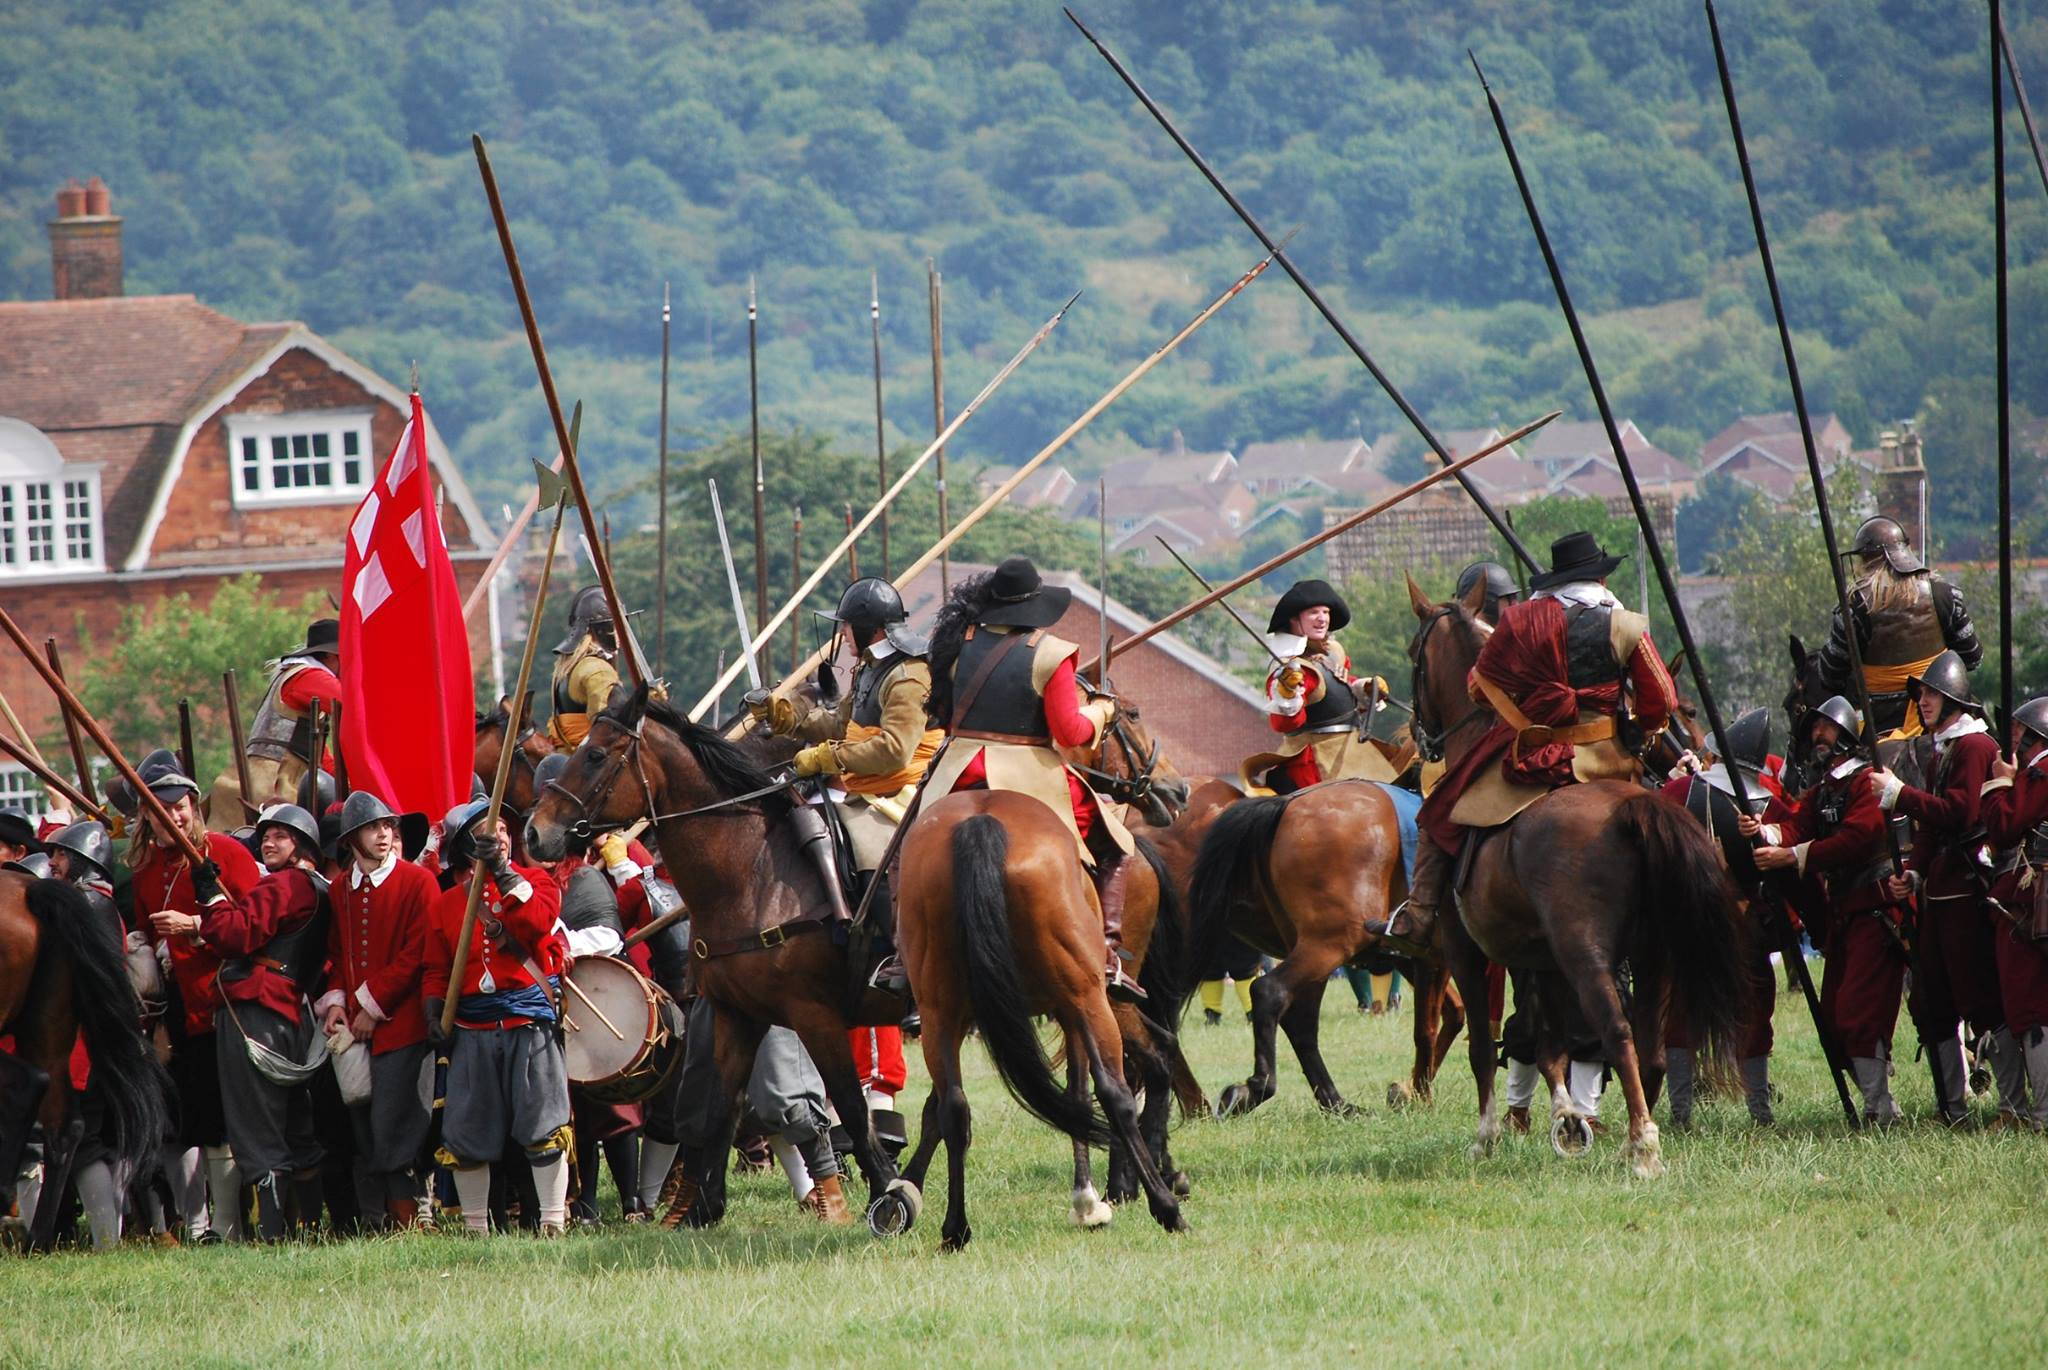 Cavalry fight and Rawdons 3